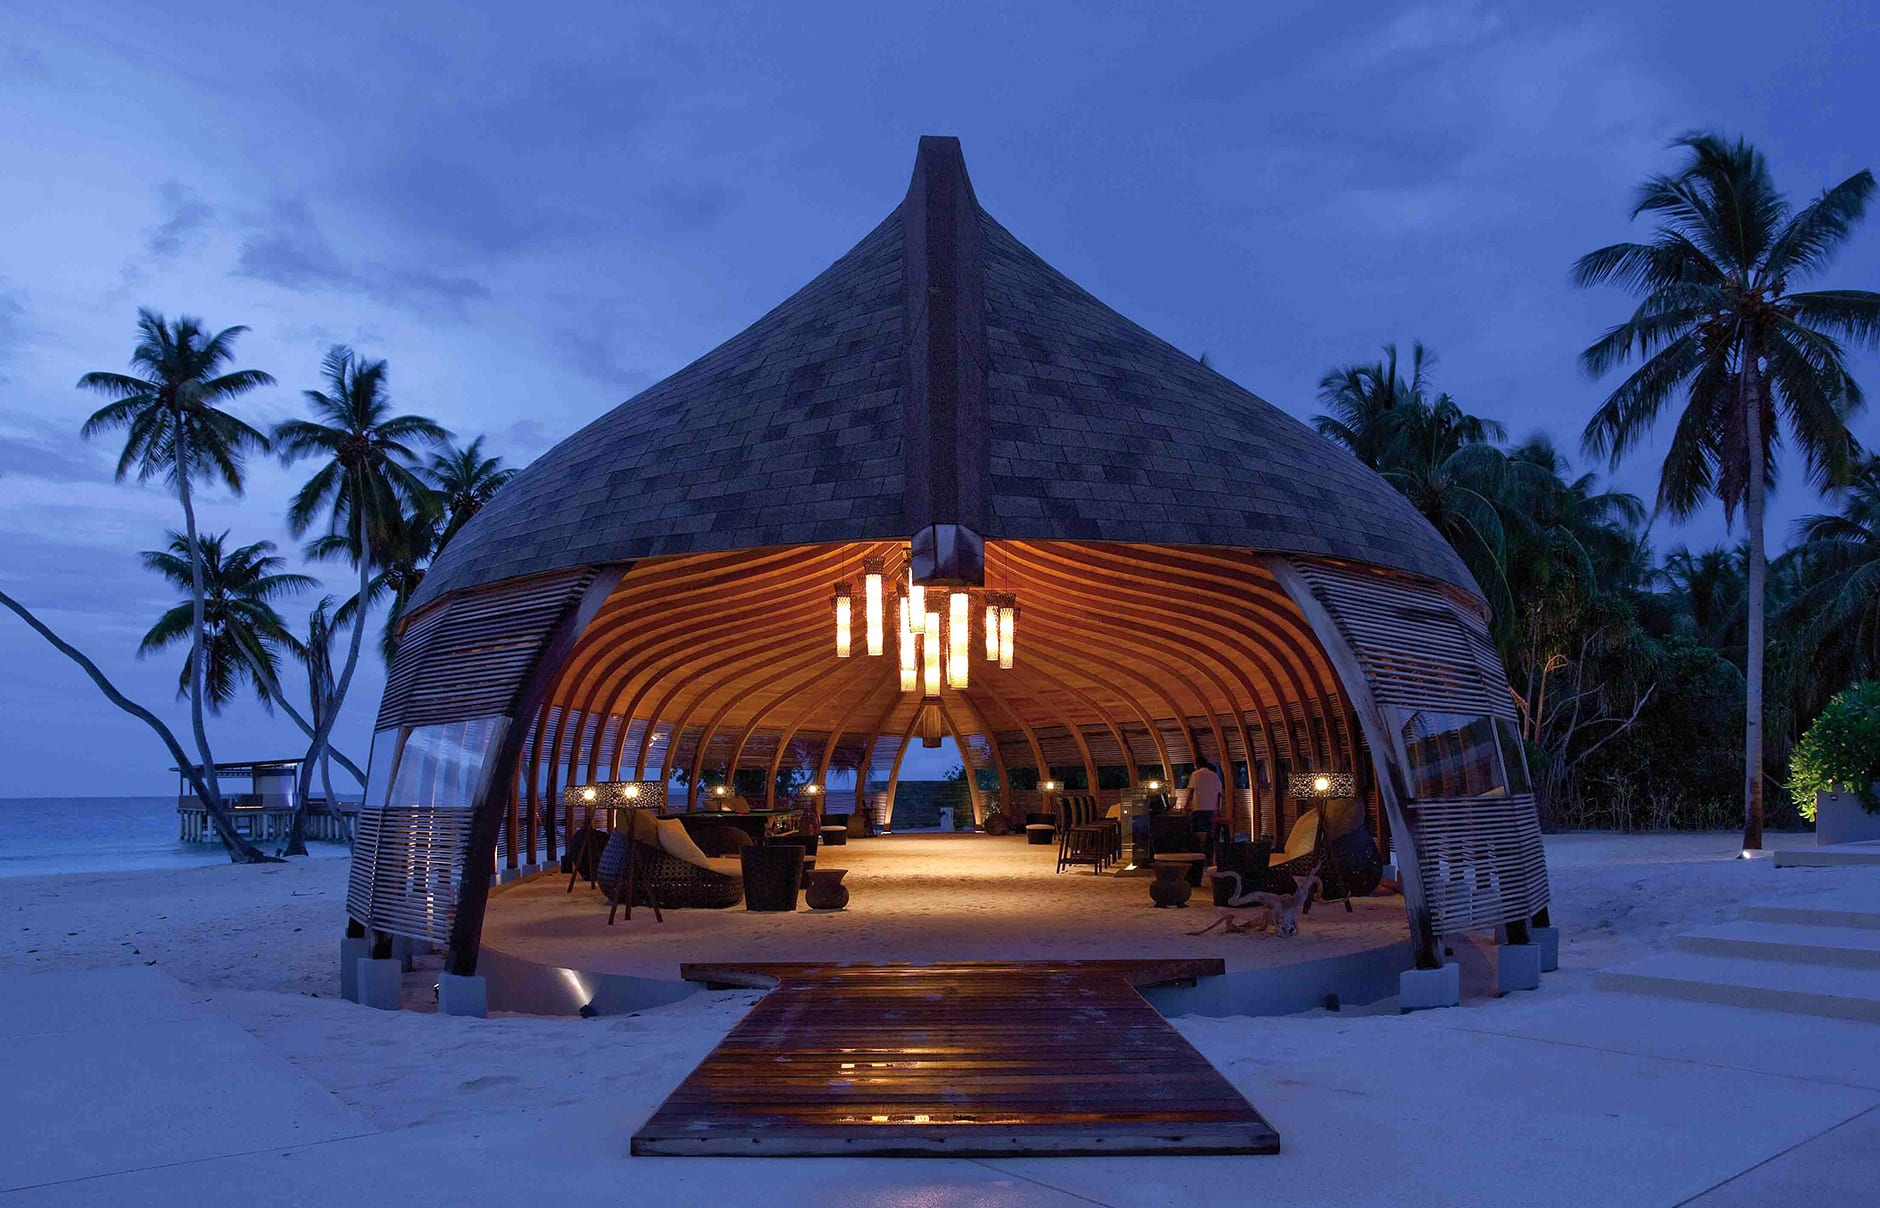 Park Hyatt Maldives, Hadahaa. Dhoni Reception area © Hyatt Corporation